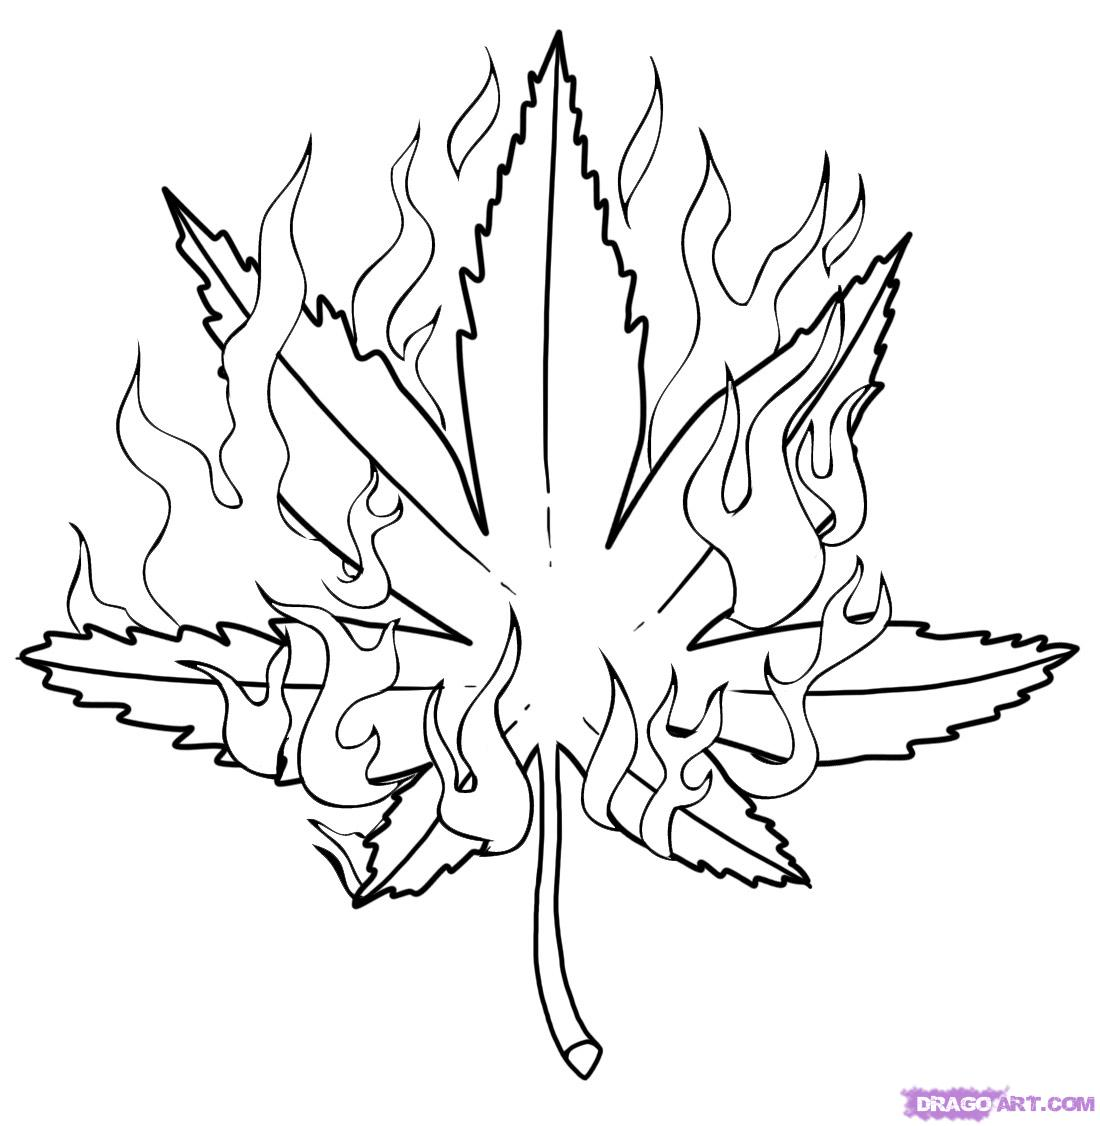 Free Pot Leaf Drawing, Download Free Clip Art, Free Clip